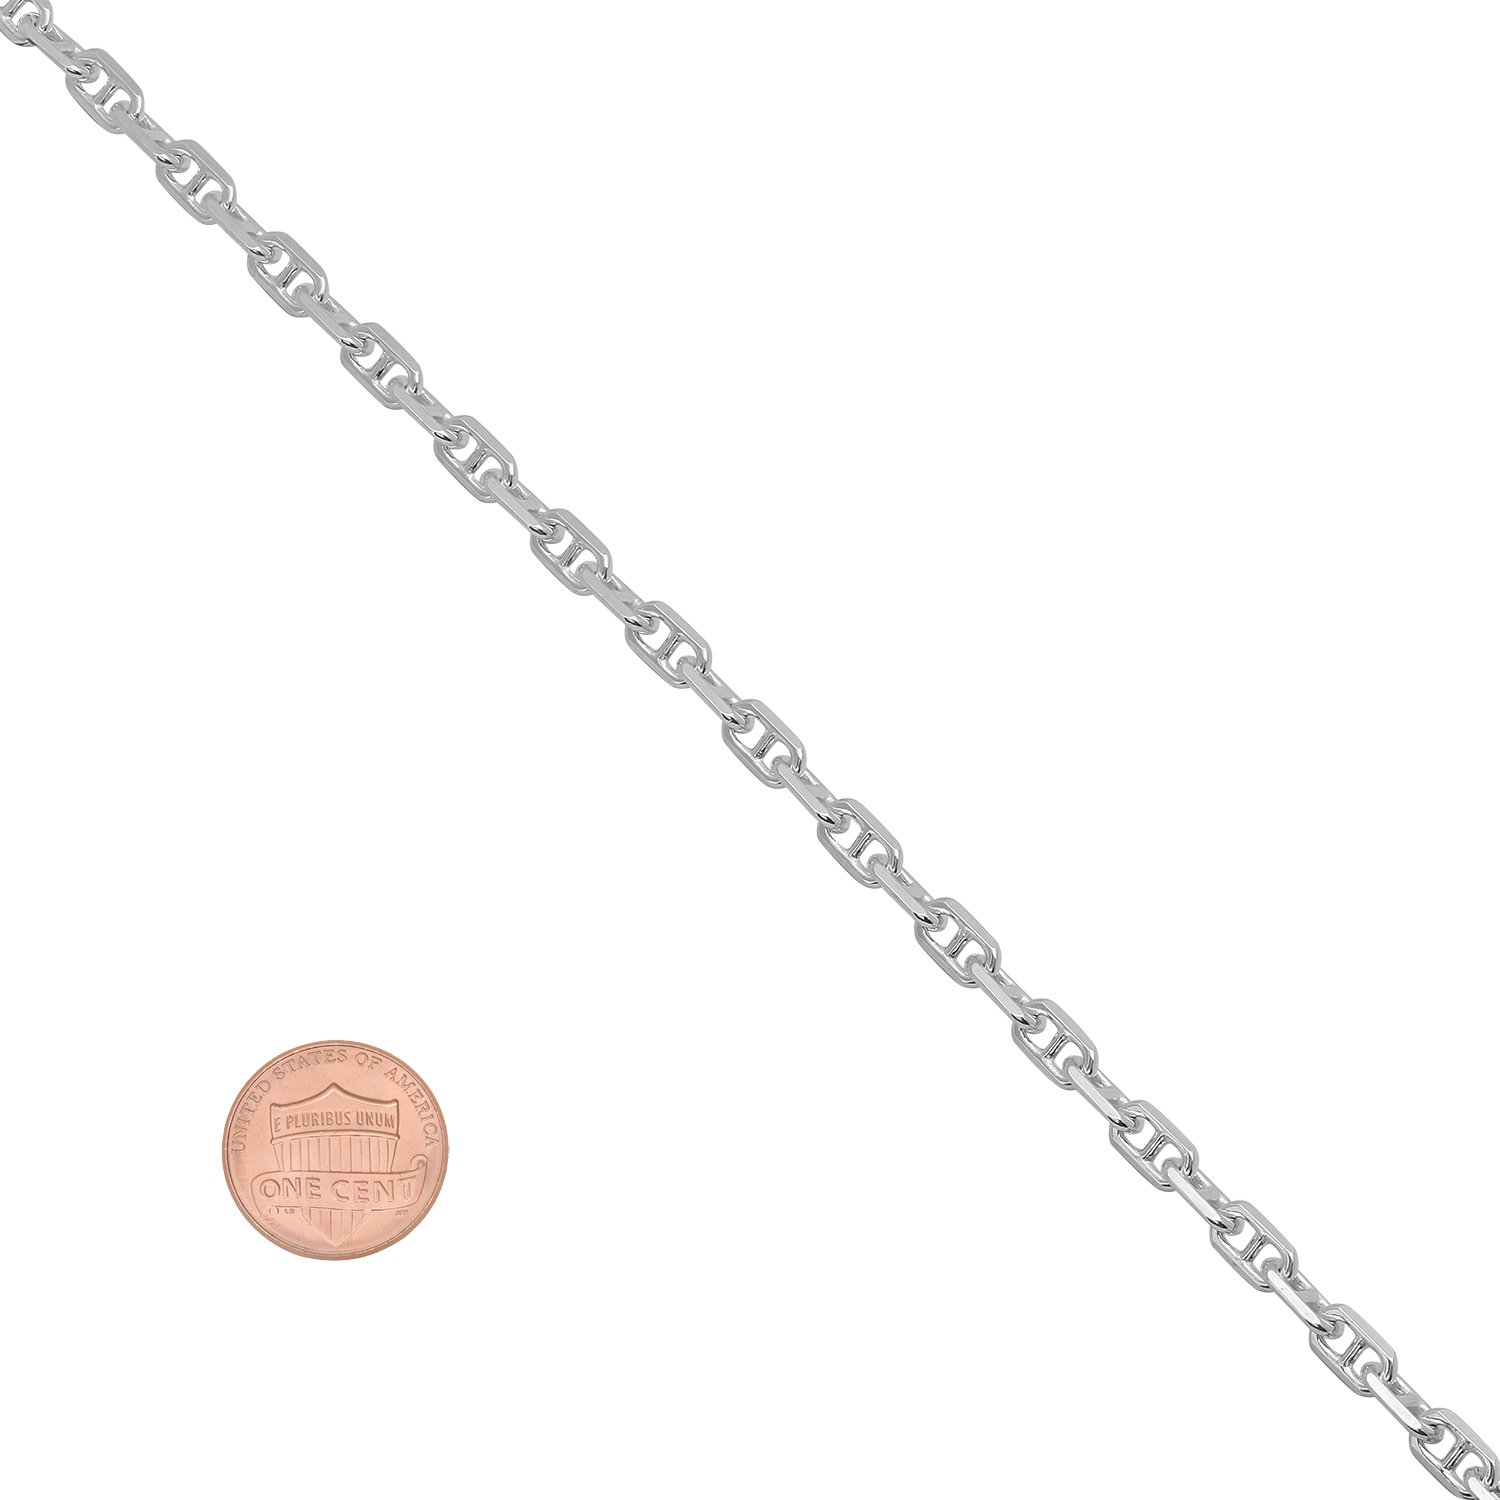 Jewelry Cloth 3.7mm Authentic 925 Sterling Silver Beveled Mariner Chain Bracelet Made In Italy